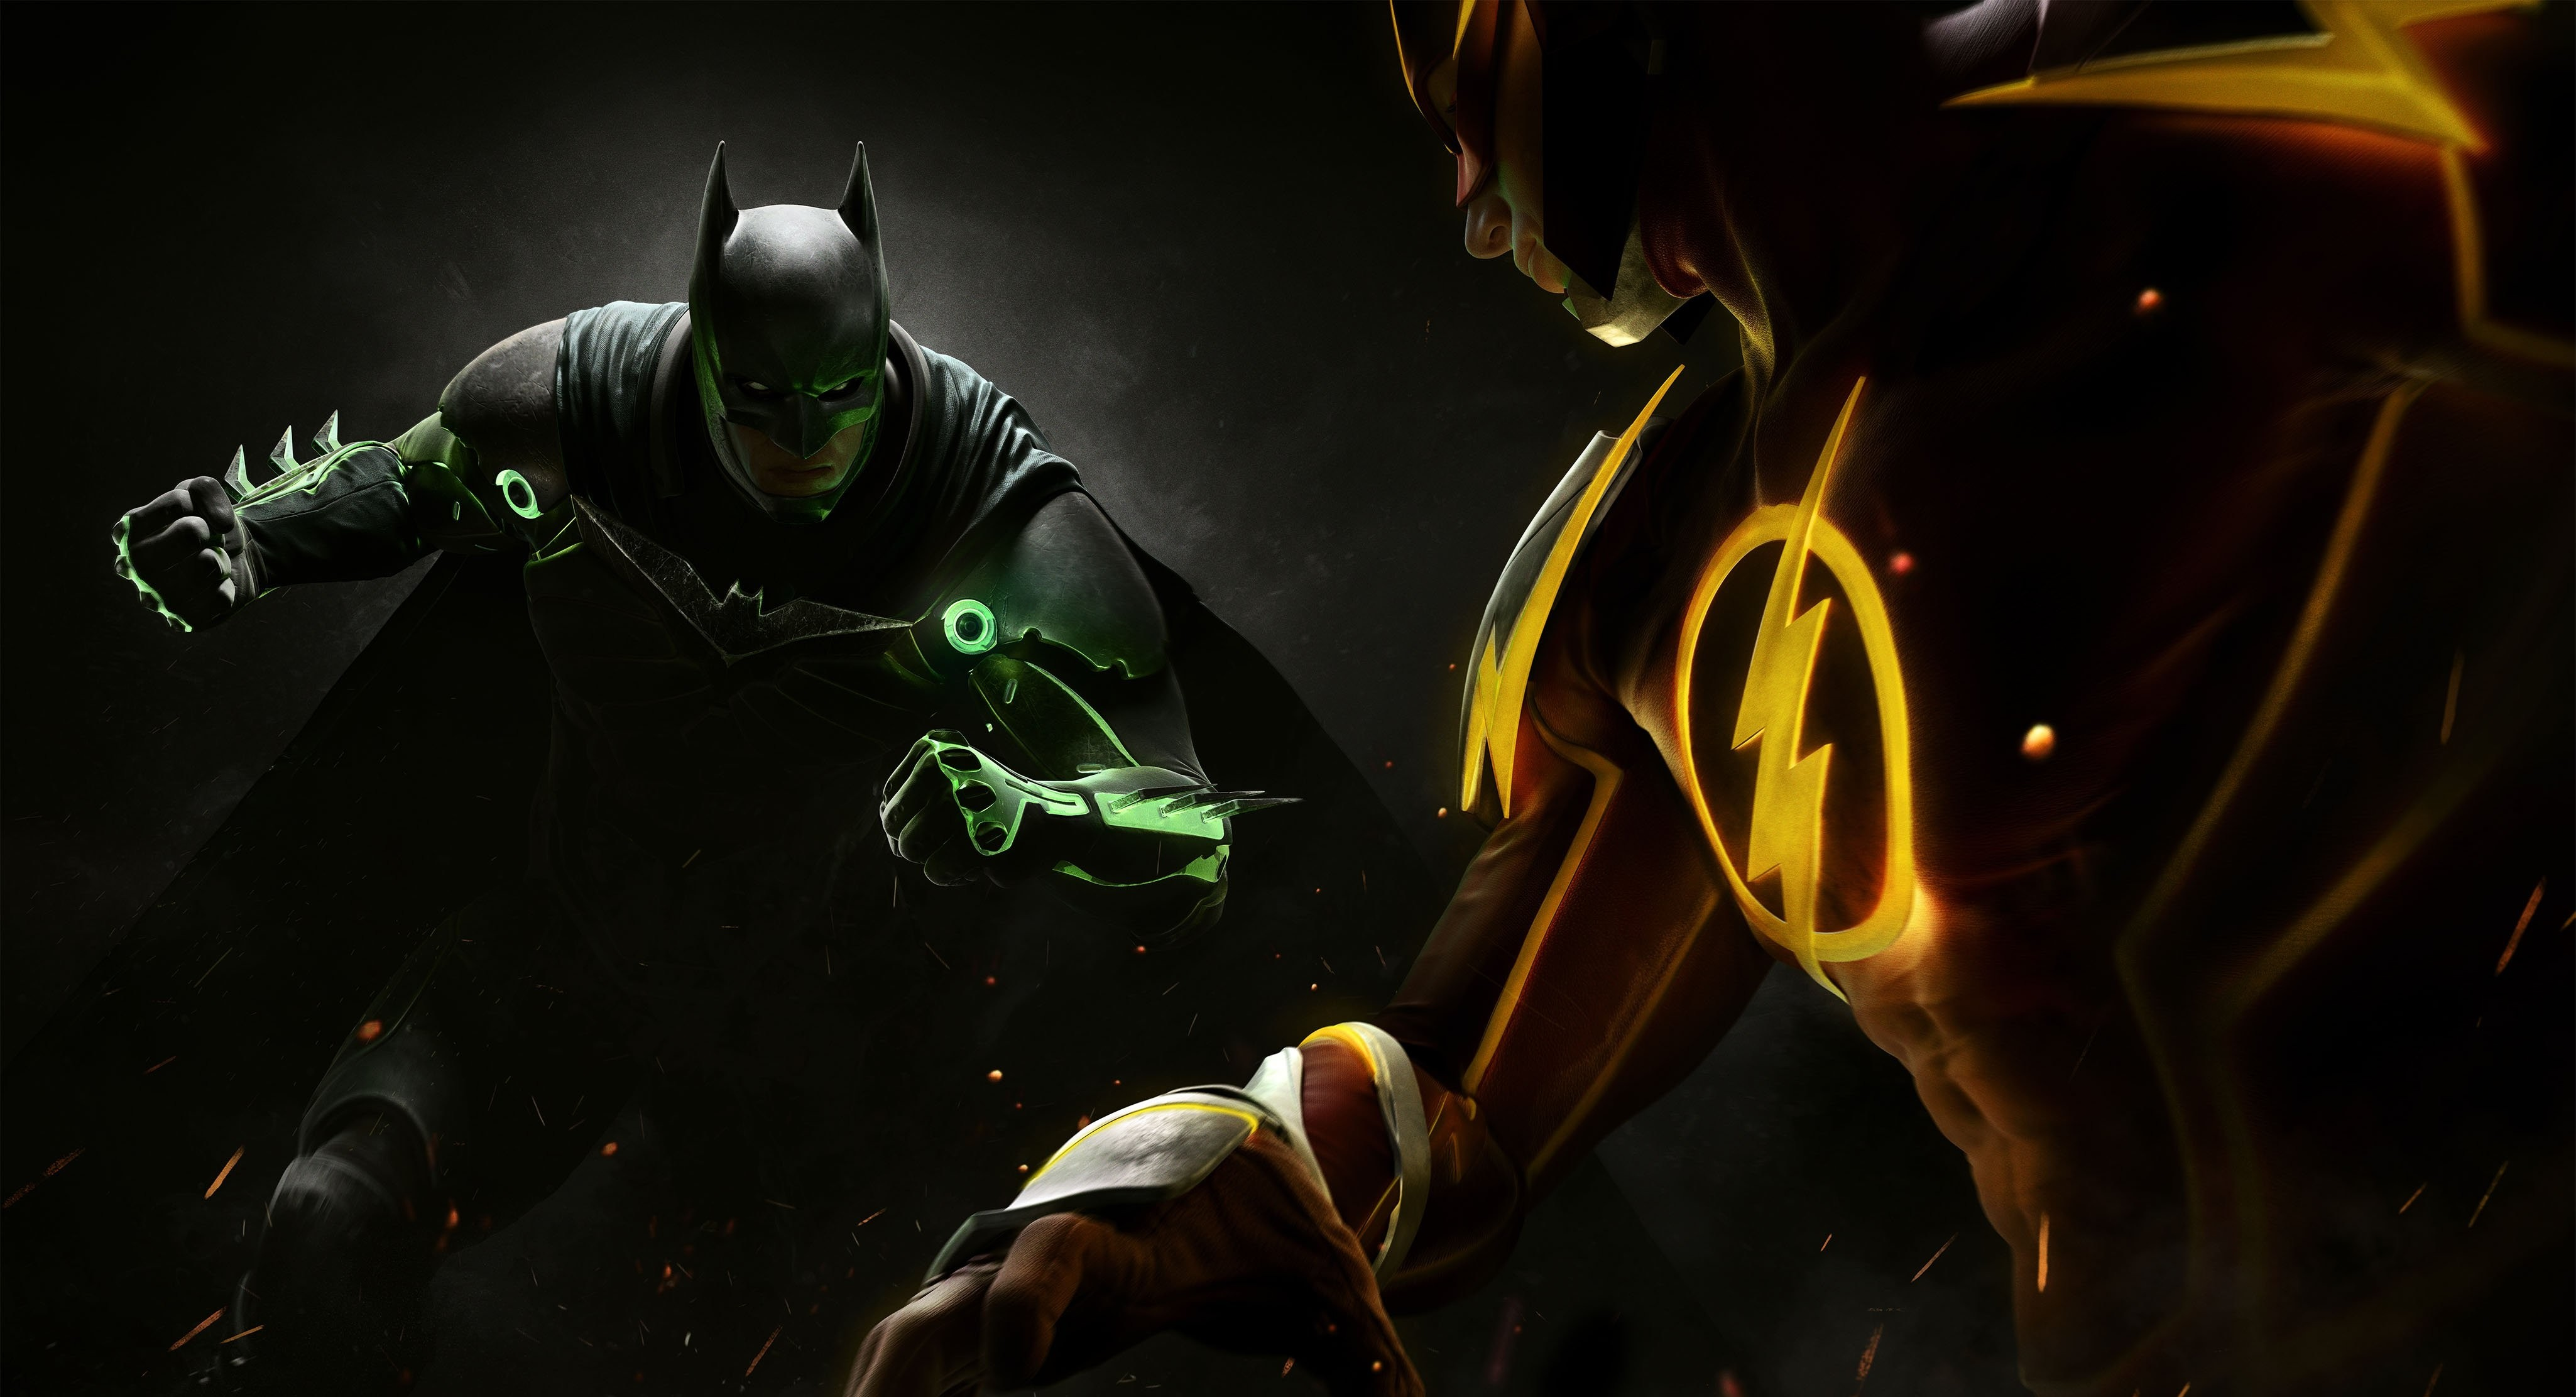 Wallpaper Injustice 2 Batman Superman Fighting PC PlayStation